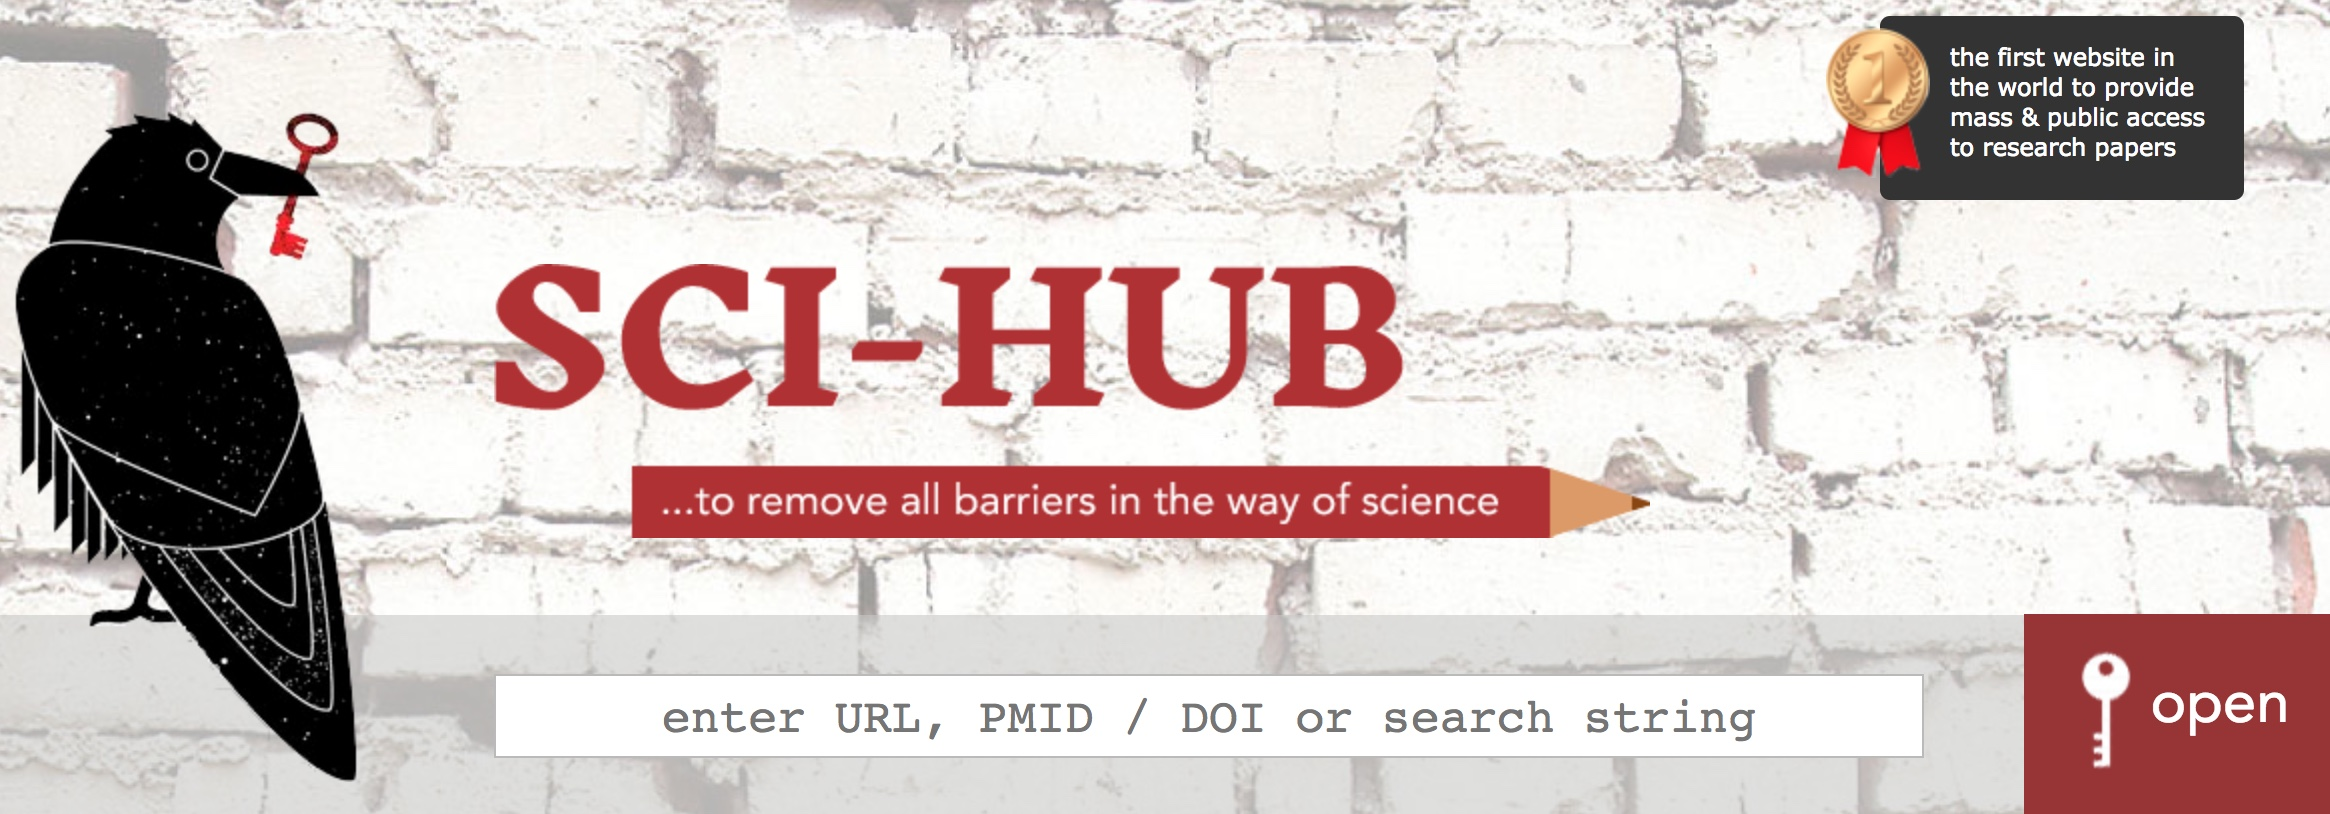 How Scihub Is at the Forefront of the Quest to Frame Scientific Knowledge  as Public Good